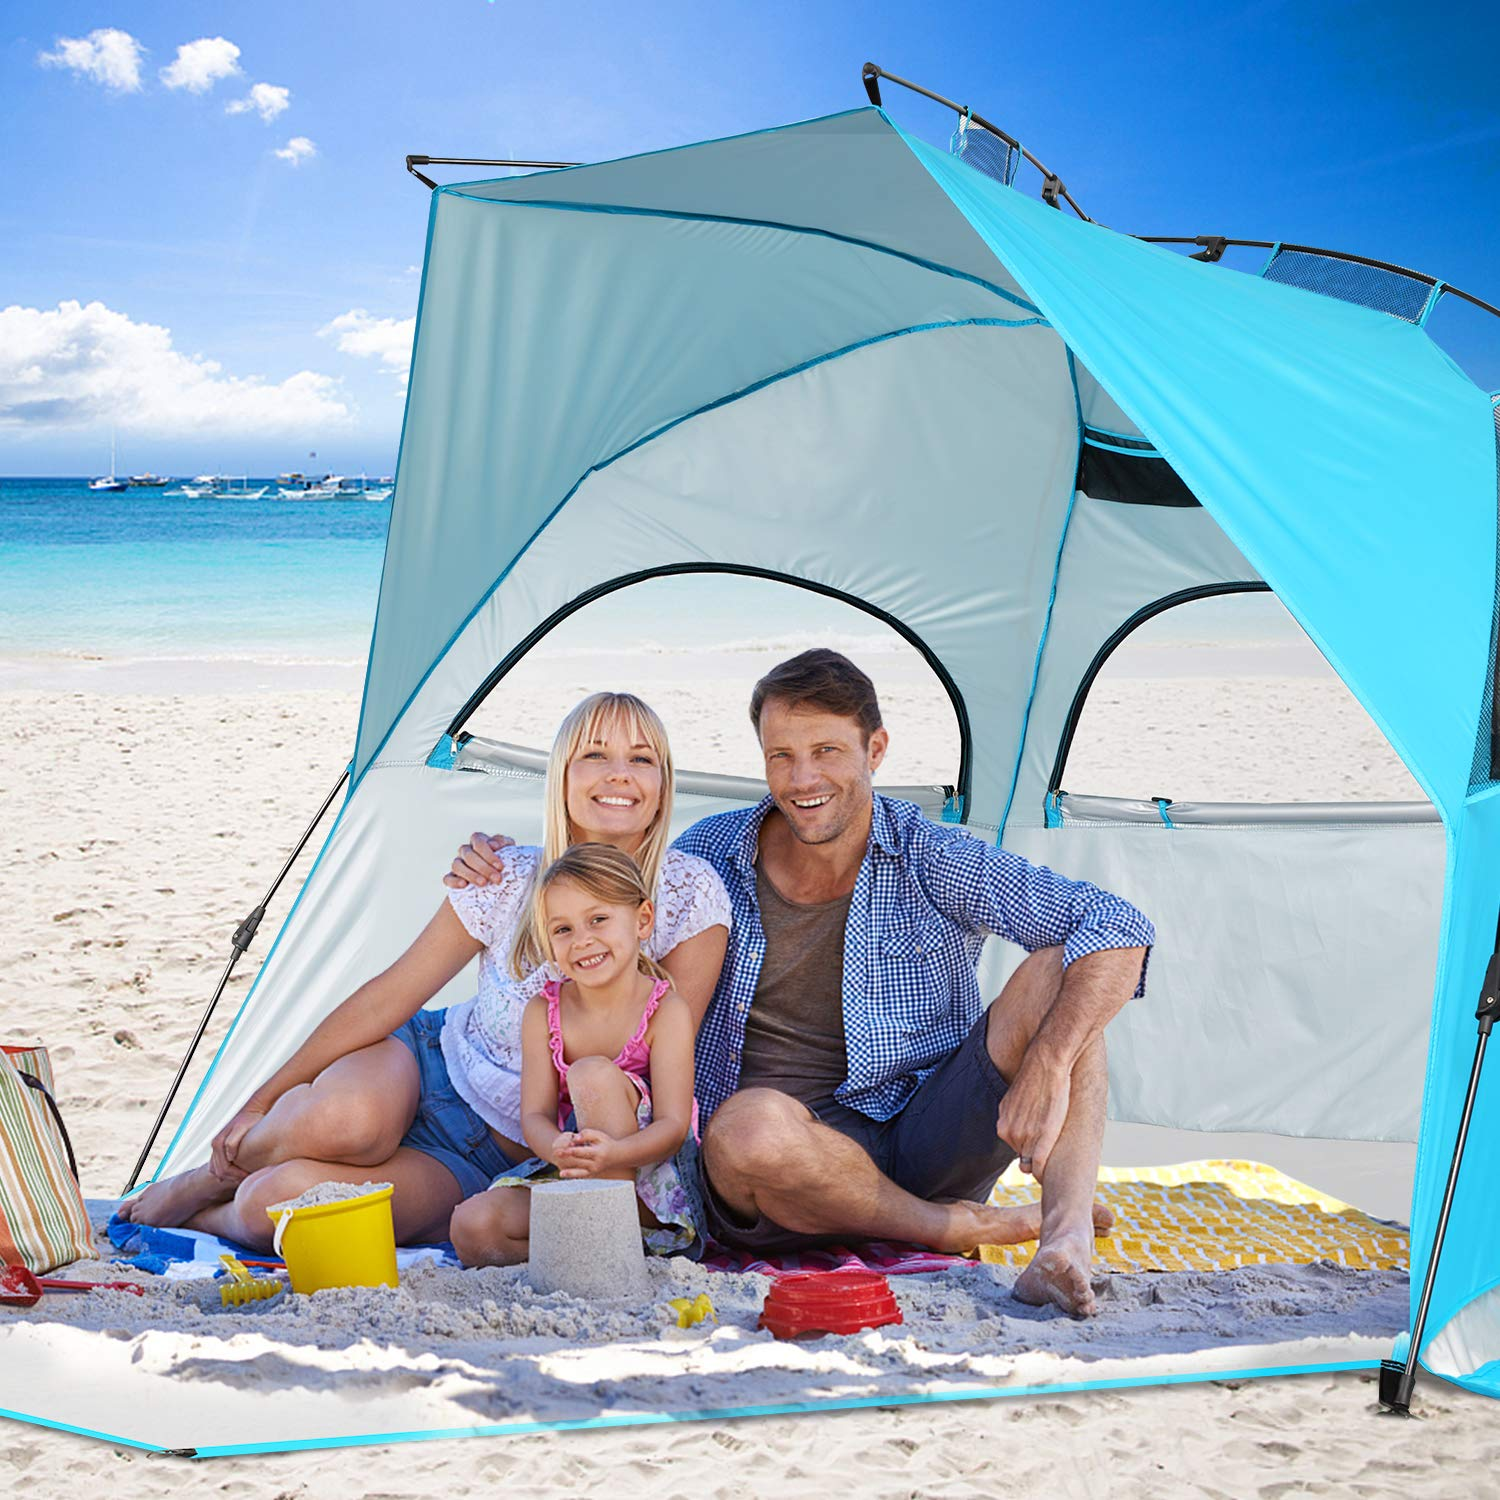 BATTOP 4 Person Instant Beach Tent Sun Shelter for Family – Easy Set Up Sun Shade Outdoor